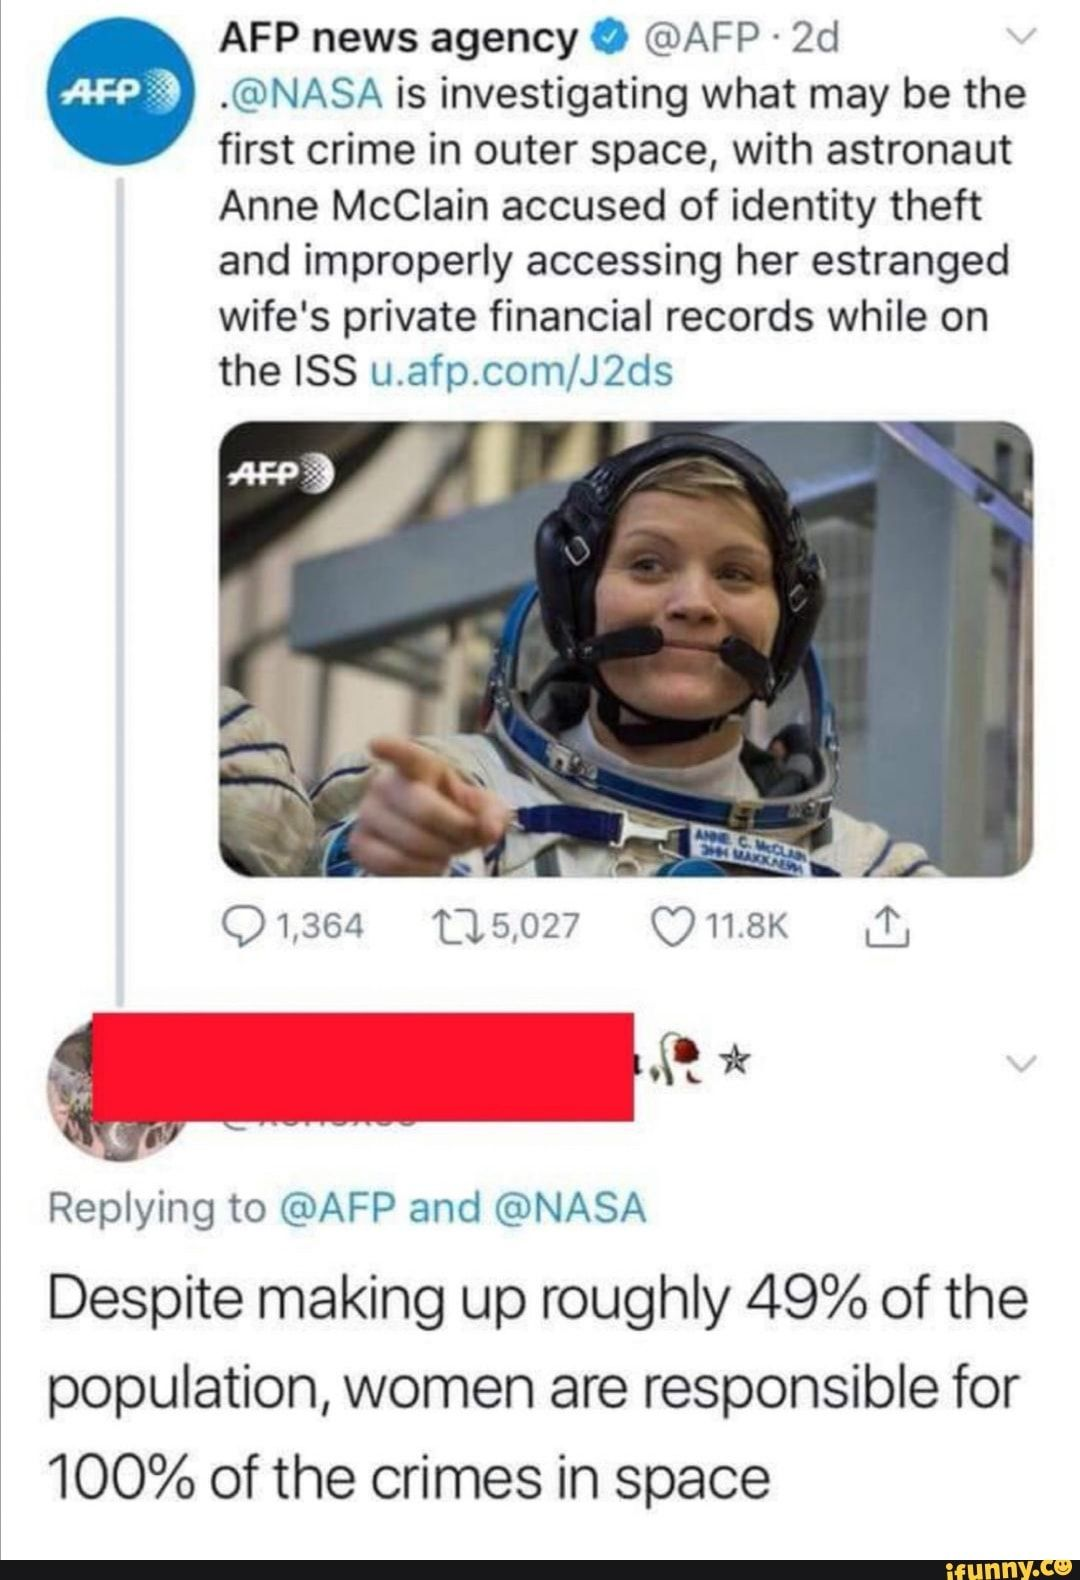 Picture memes xwGUrAp17 — iFunny AFP news agency O @AFP - 2d .@NASA is investigating what may be the first crime in outer space, with astronaut Anne McClain accused of identity theft and improperly accessing her estranged wife's private financial records while on the ISS /J2ds Replying to @AFP and @NASA Despite making up r...